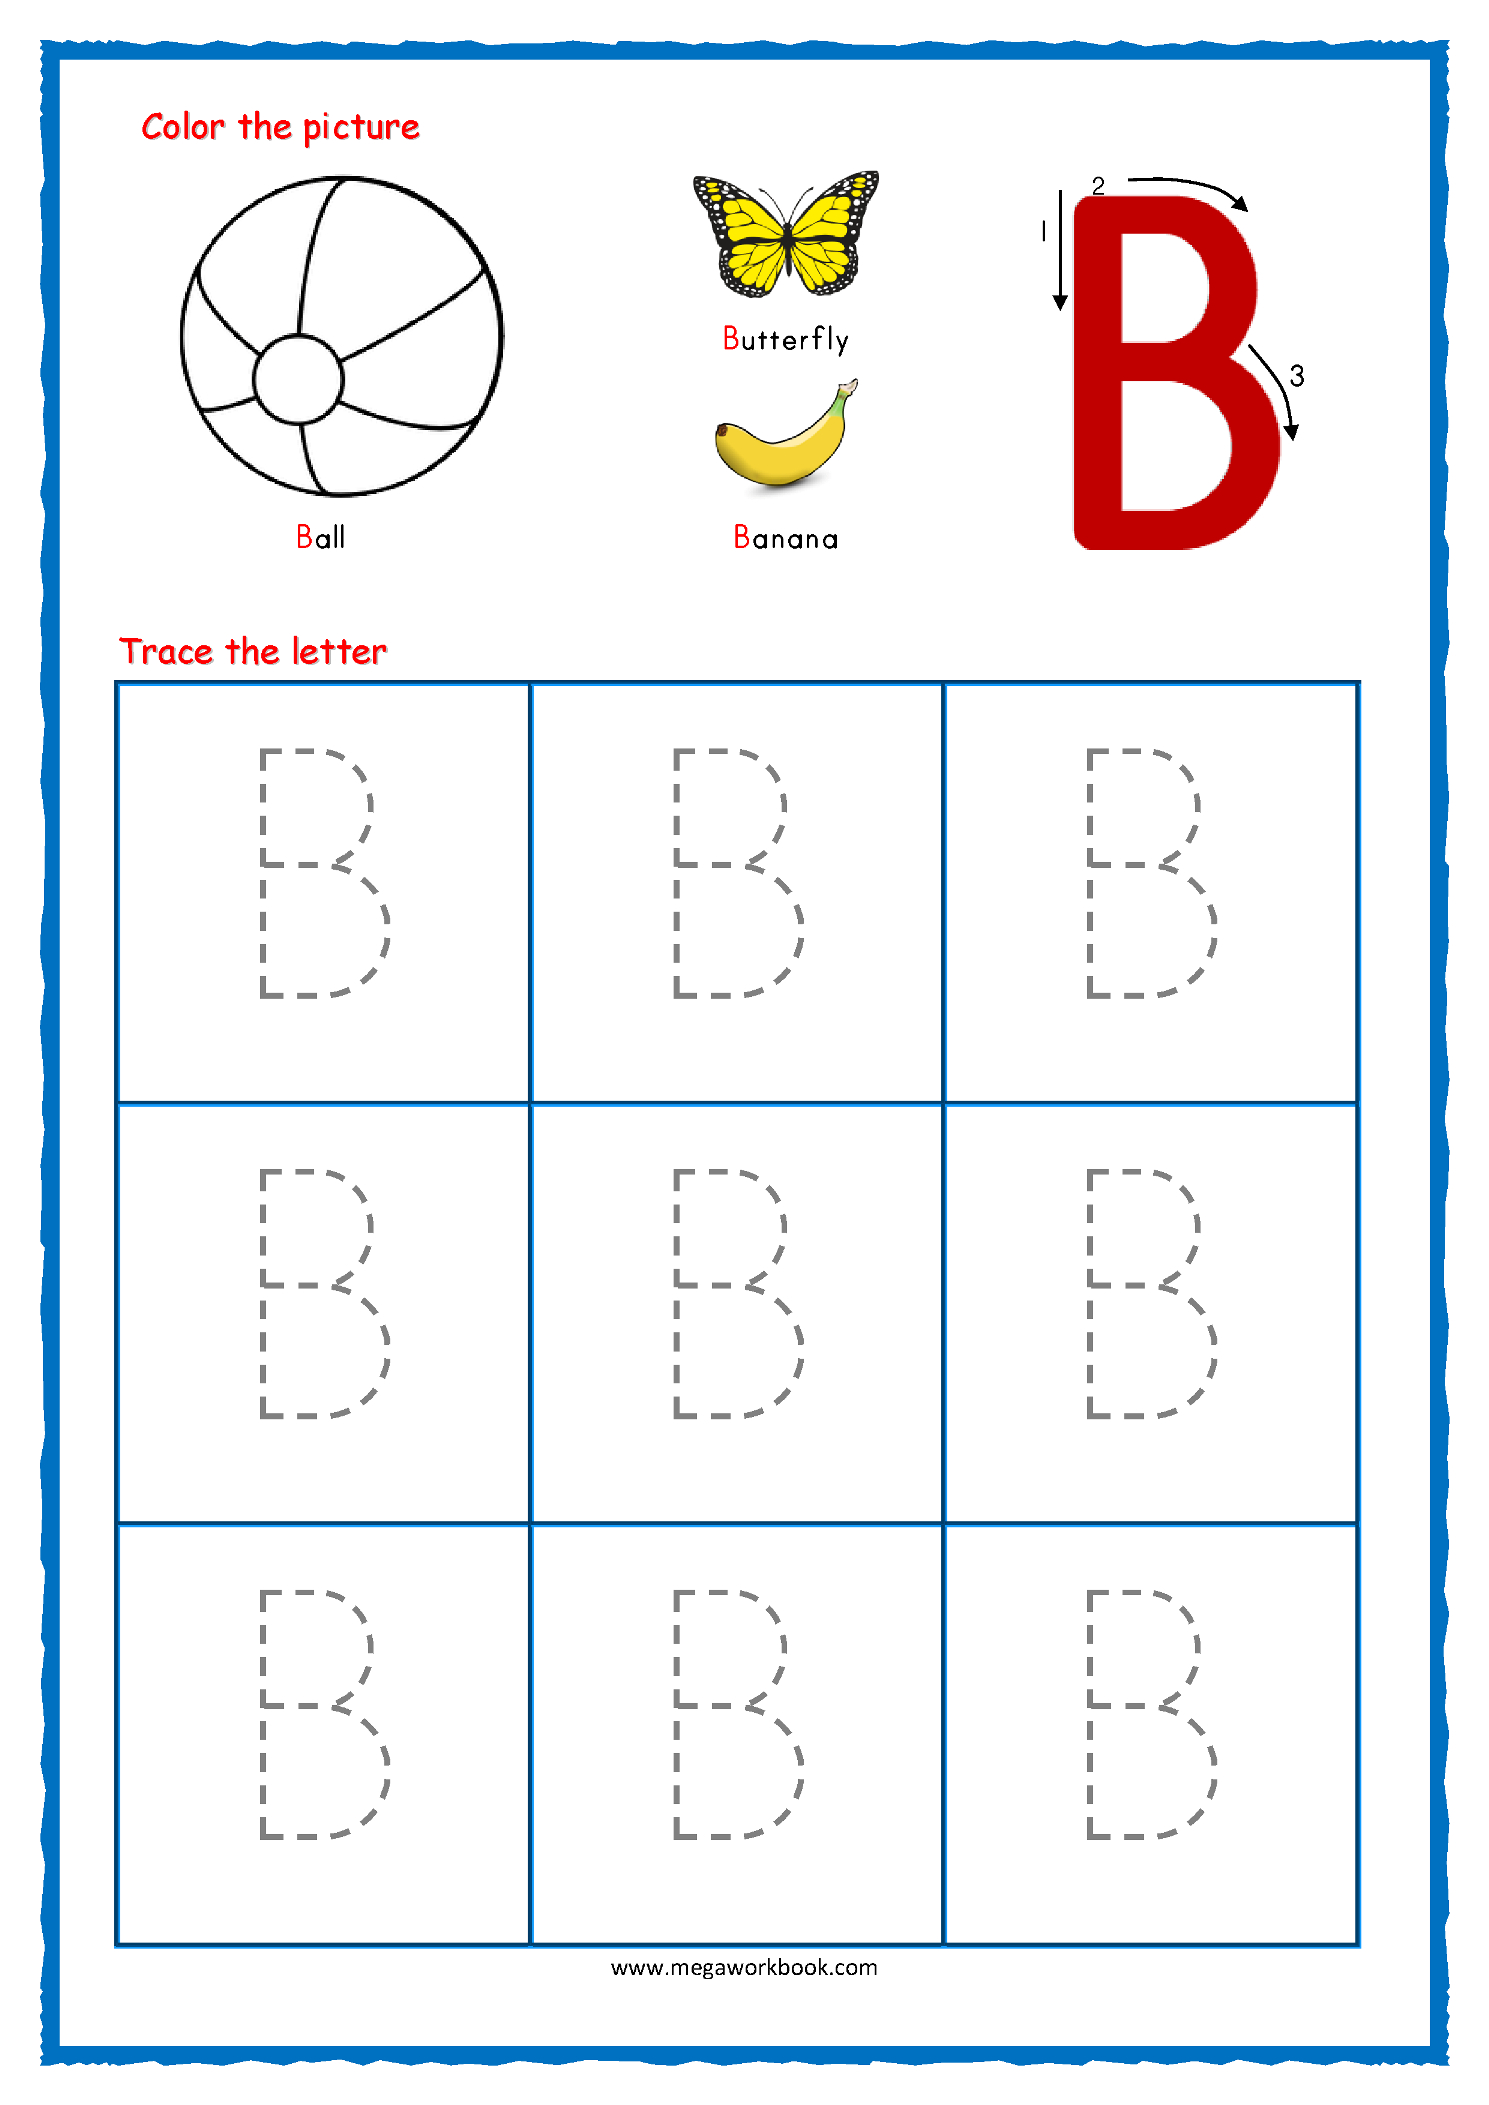 Tracing Letters - Alphabet Tracing - Capital Letters with regard to Alphabet Tracing Online Free